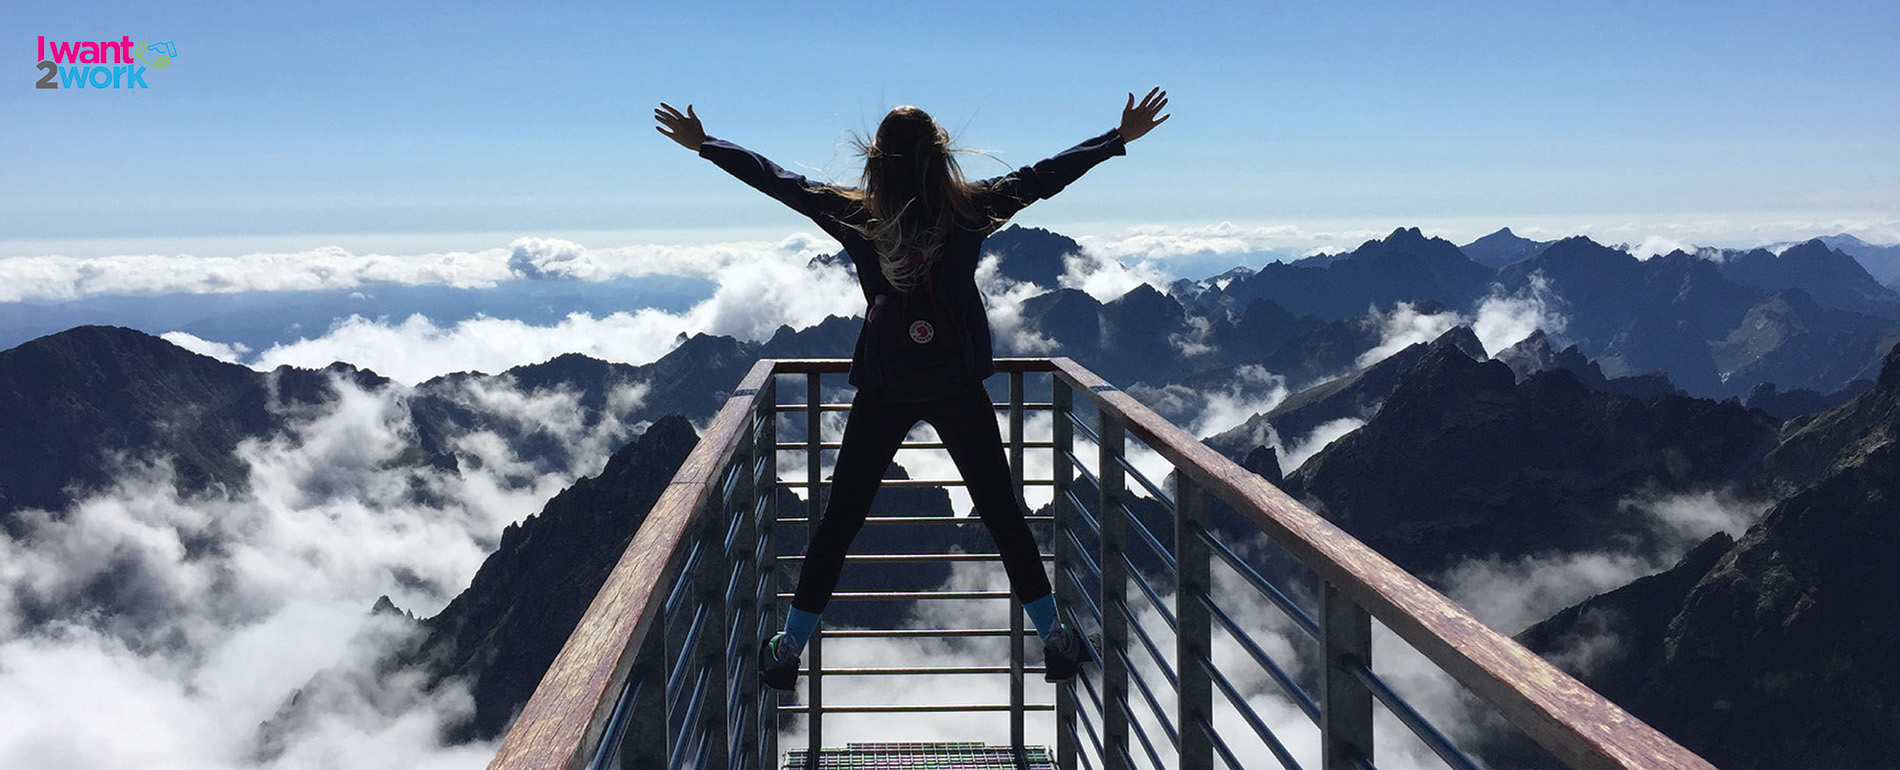 i want 2 work stand out from the crowd girl on top of a mountain arms up exploring adventure